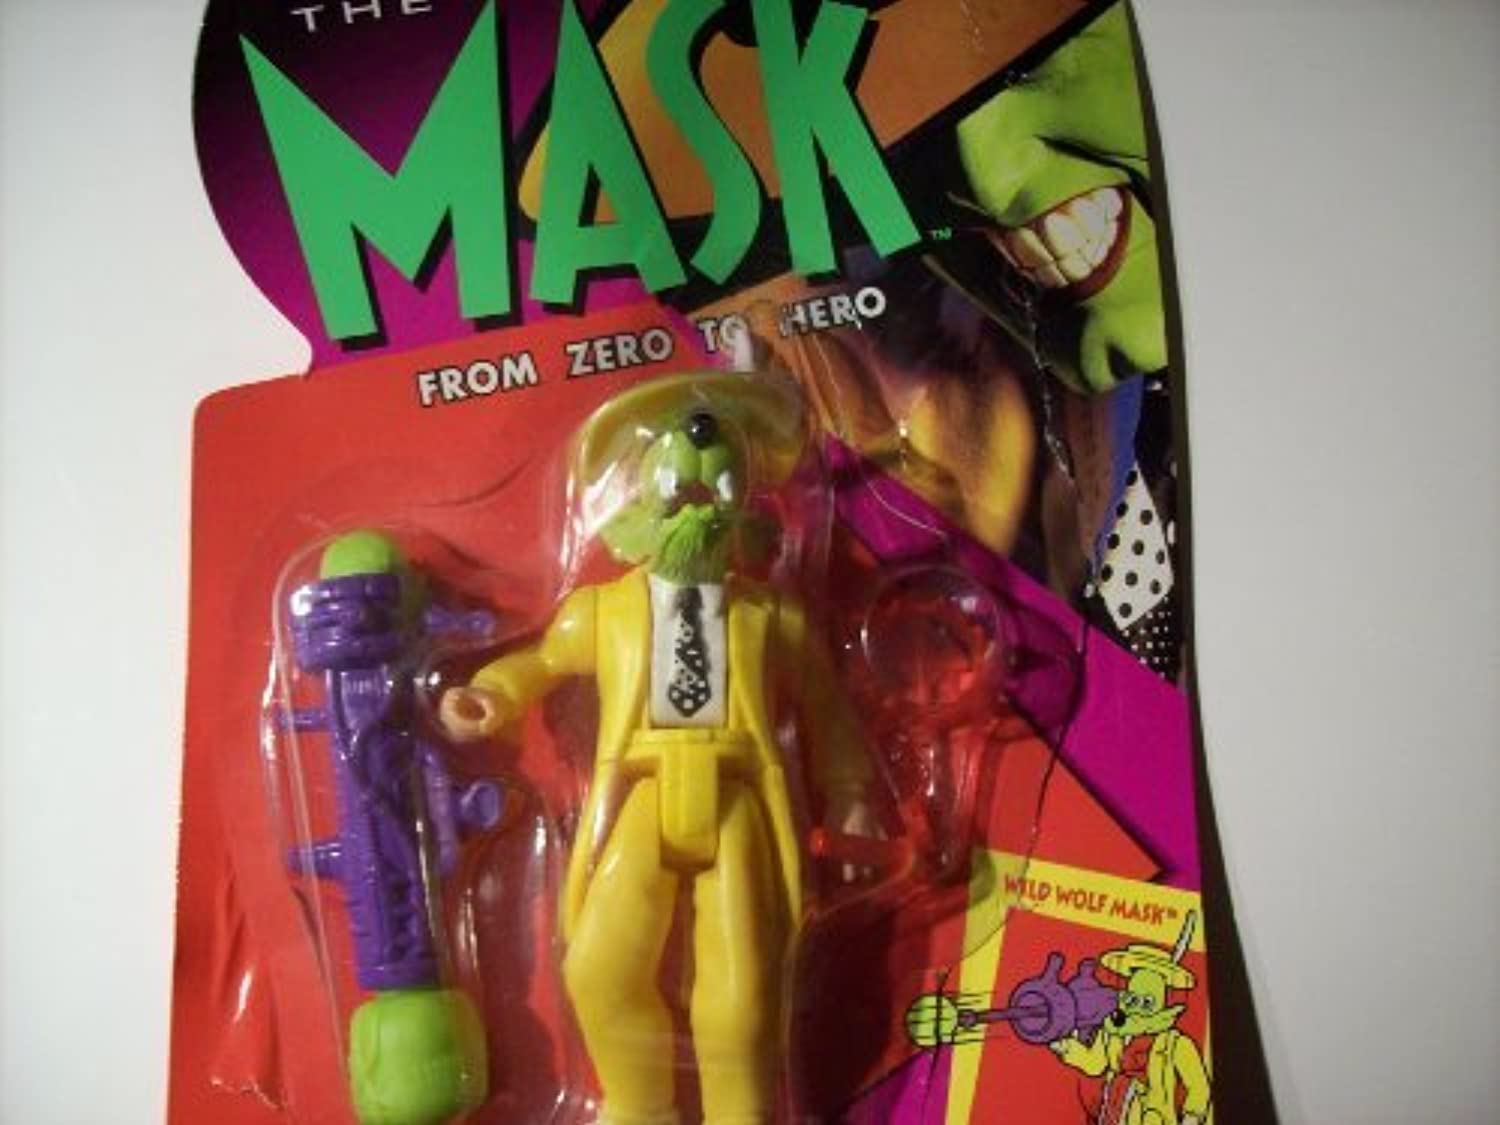 Wild Wolf Mask Action Figure From the Mask Movie by Kenner